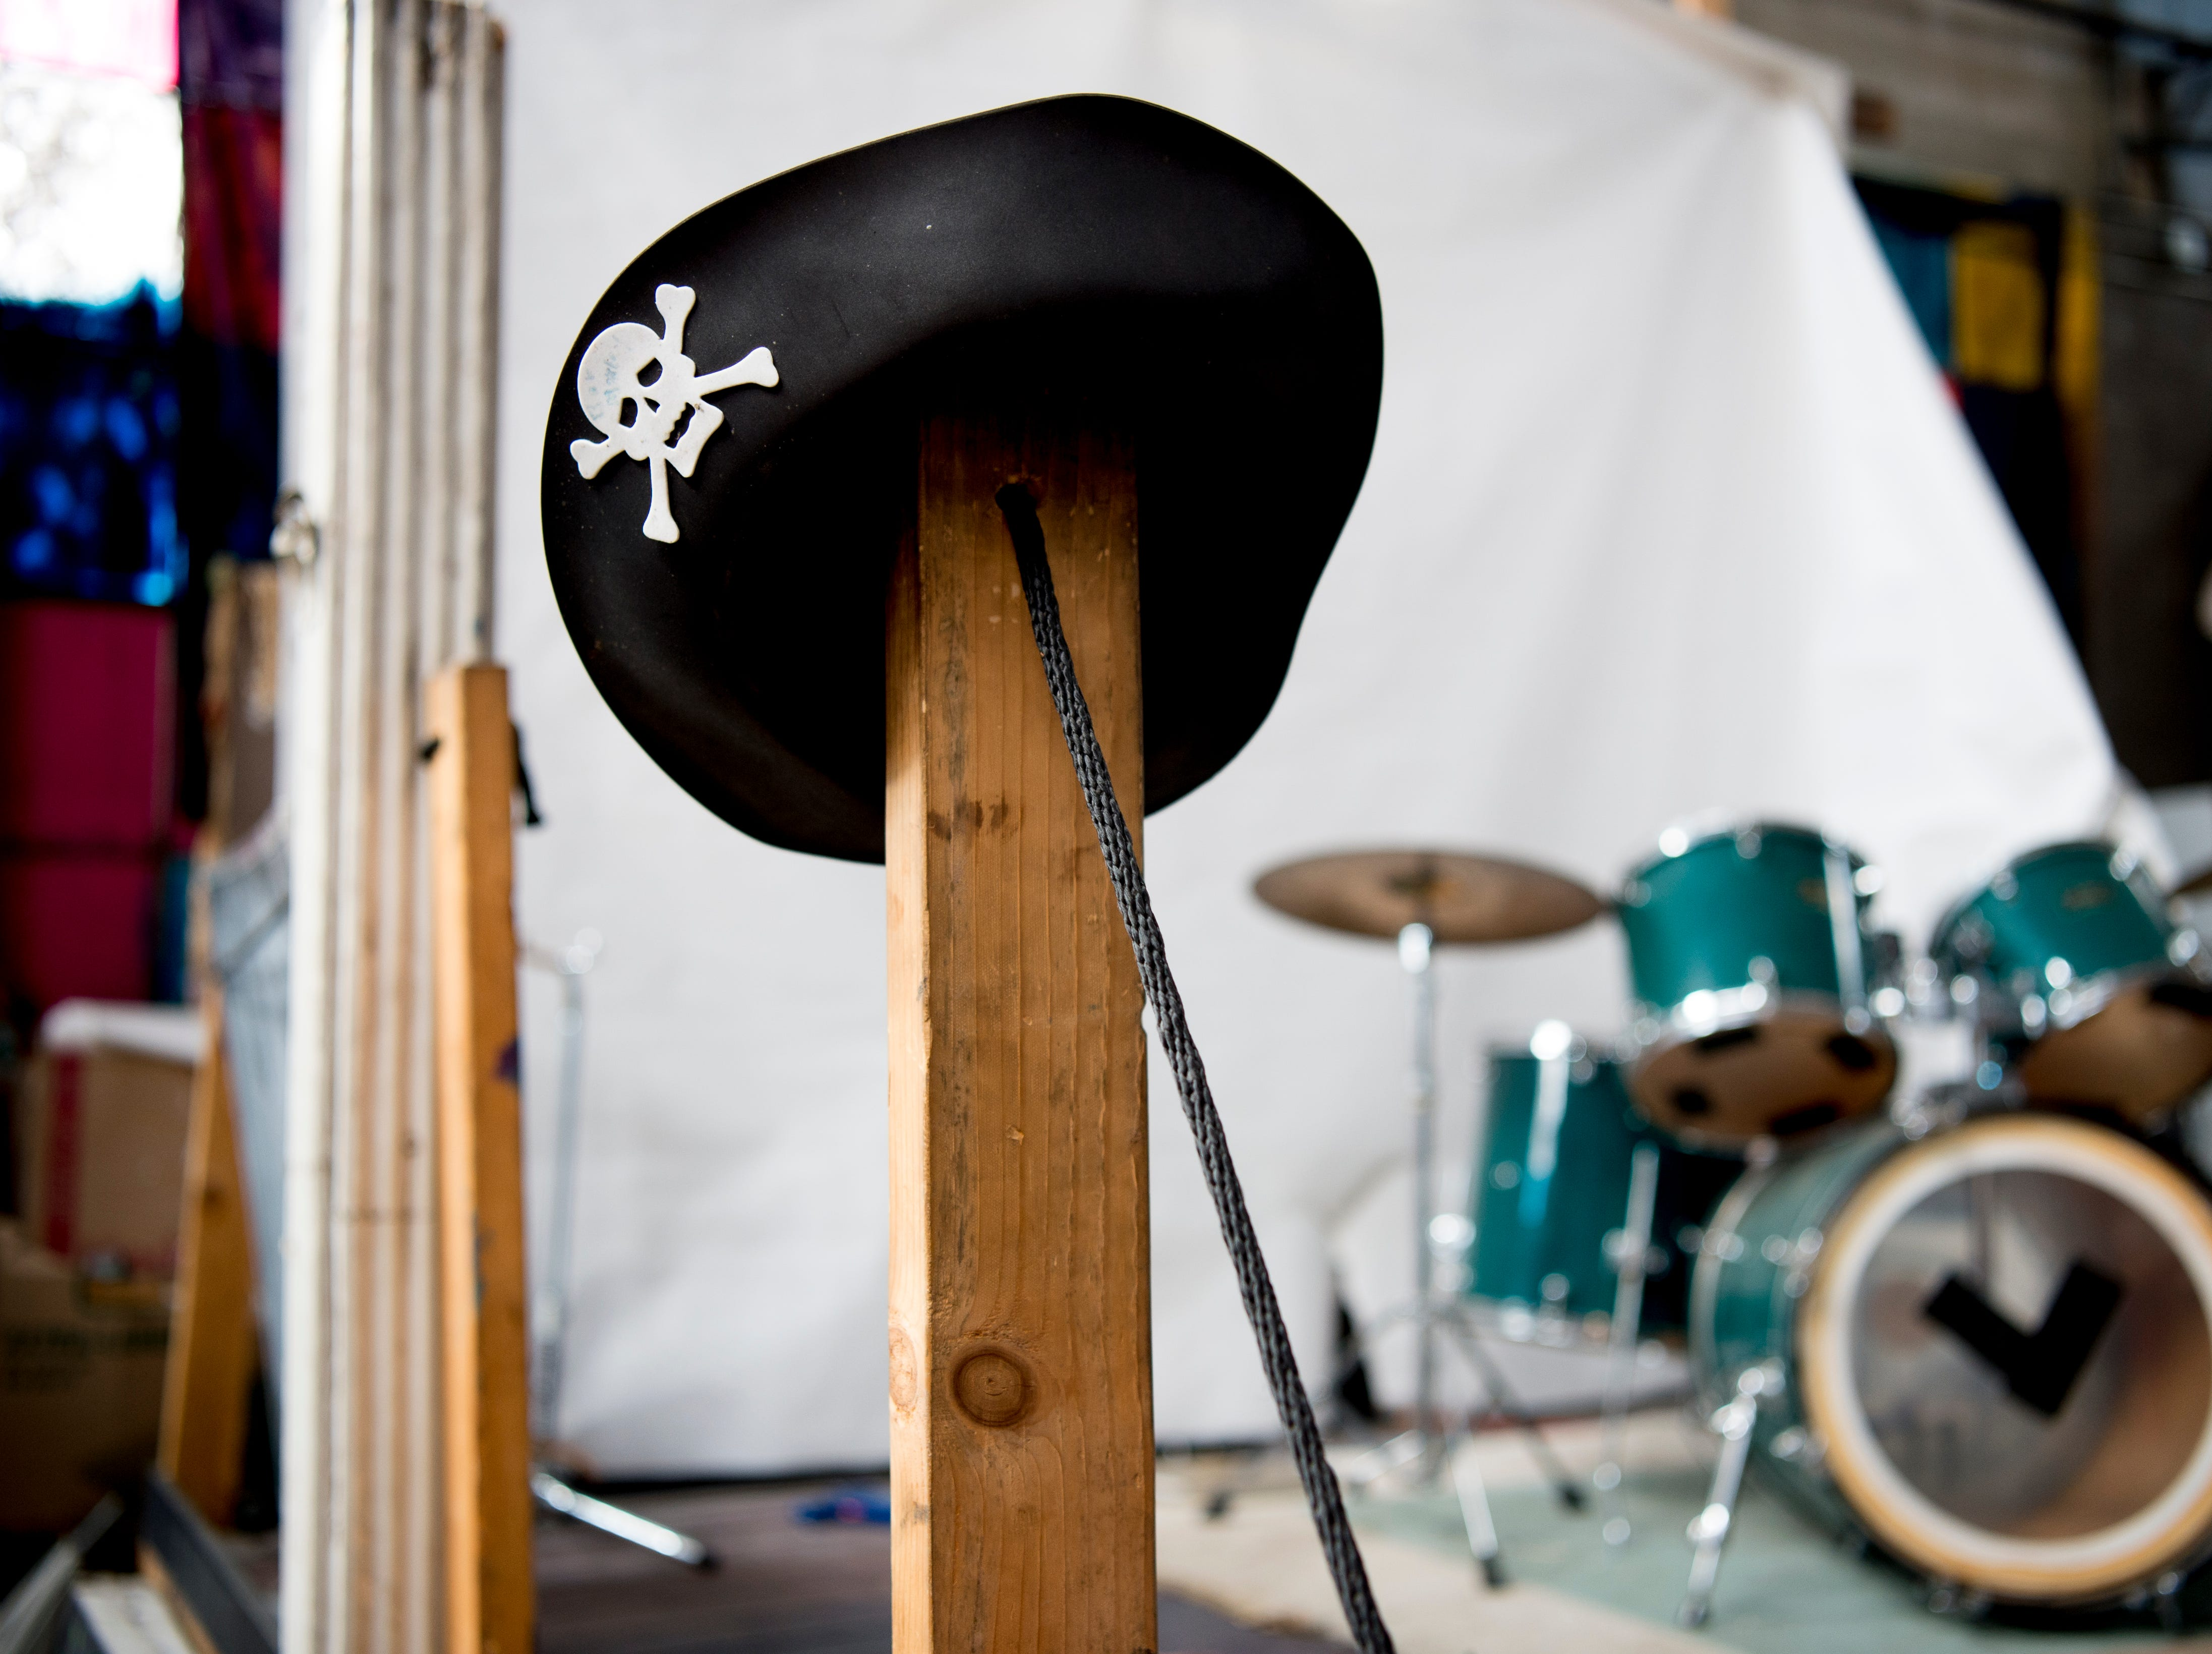 A pirate hat hangs beside the stage at Bar Marley in Knoxville, Tennessee on Thursday, February 14, 2019. The Caribbean-themed Bar Marley is facing possible acquisition and condemnation by KCDC due to code violations.